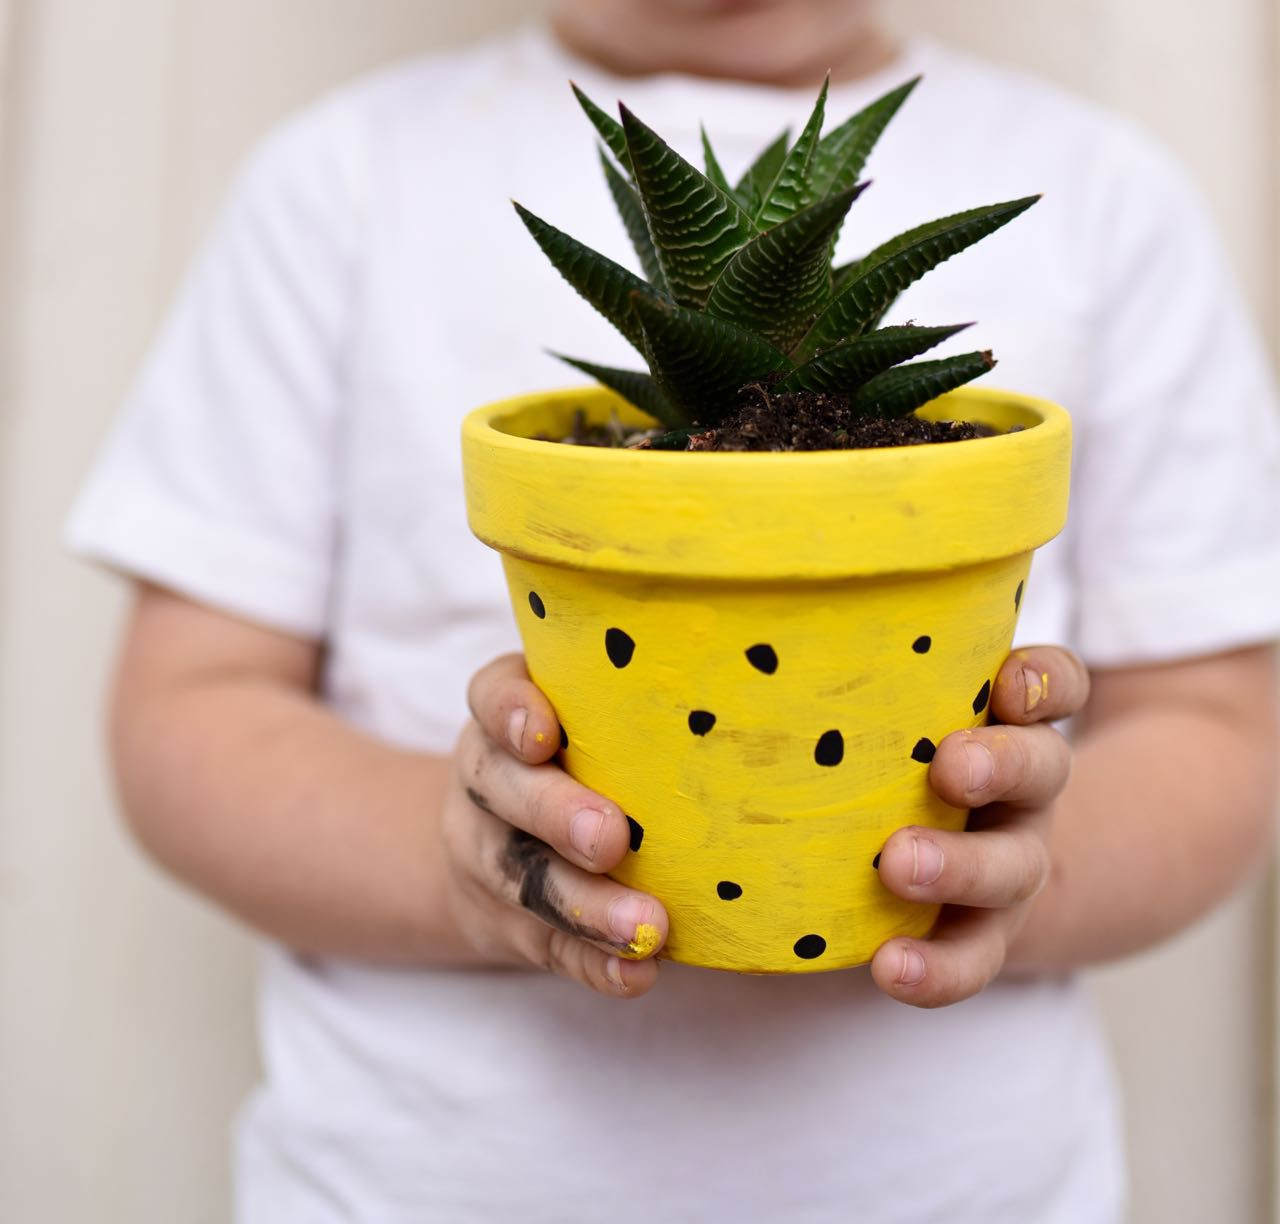 Person holding a pineapple flower pot